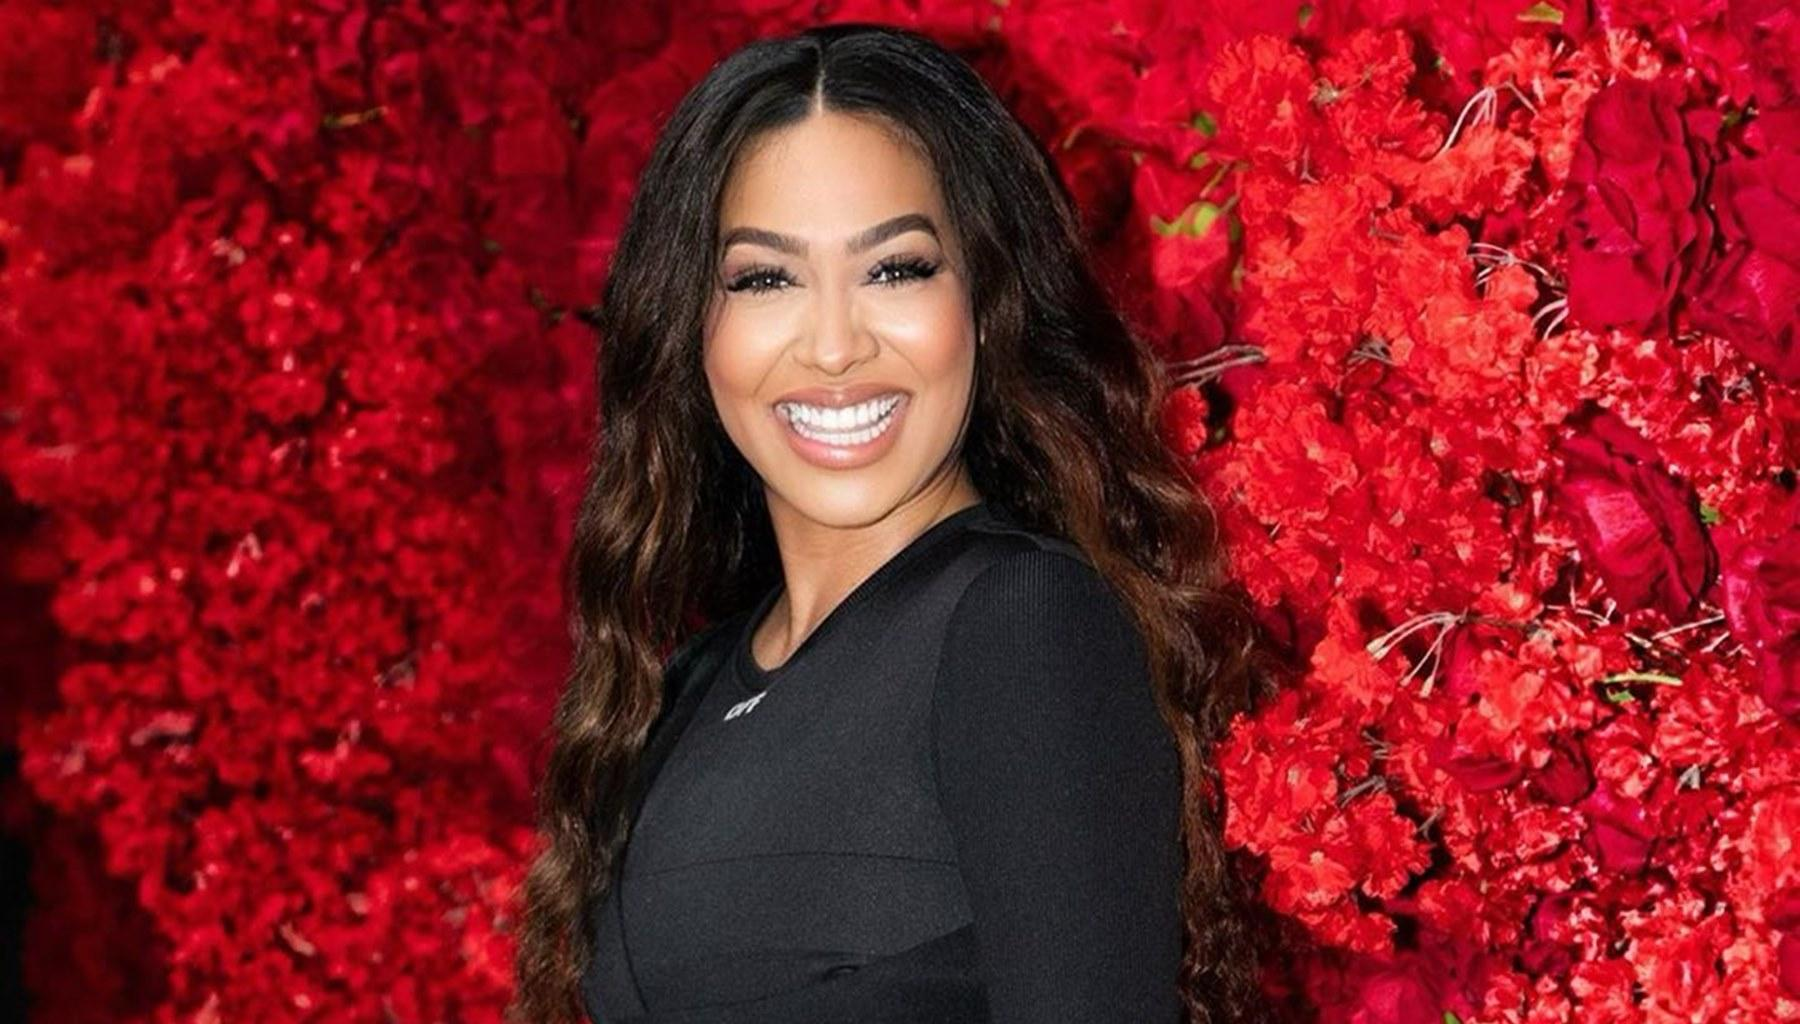 La La Anthony's Handsome Son Towers Over Her In New Gorgeous Red Carpet Photos